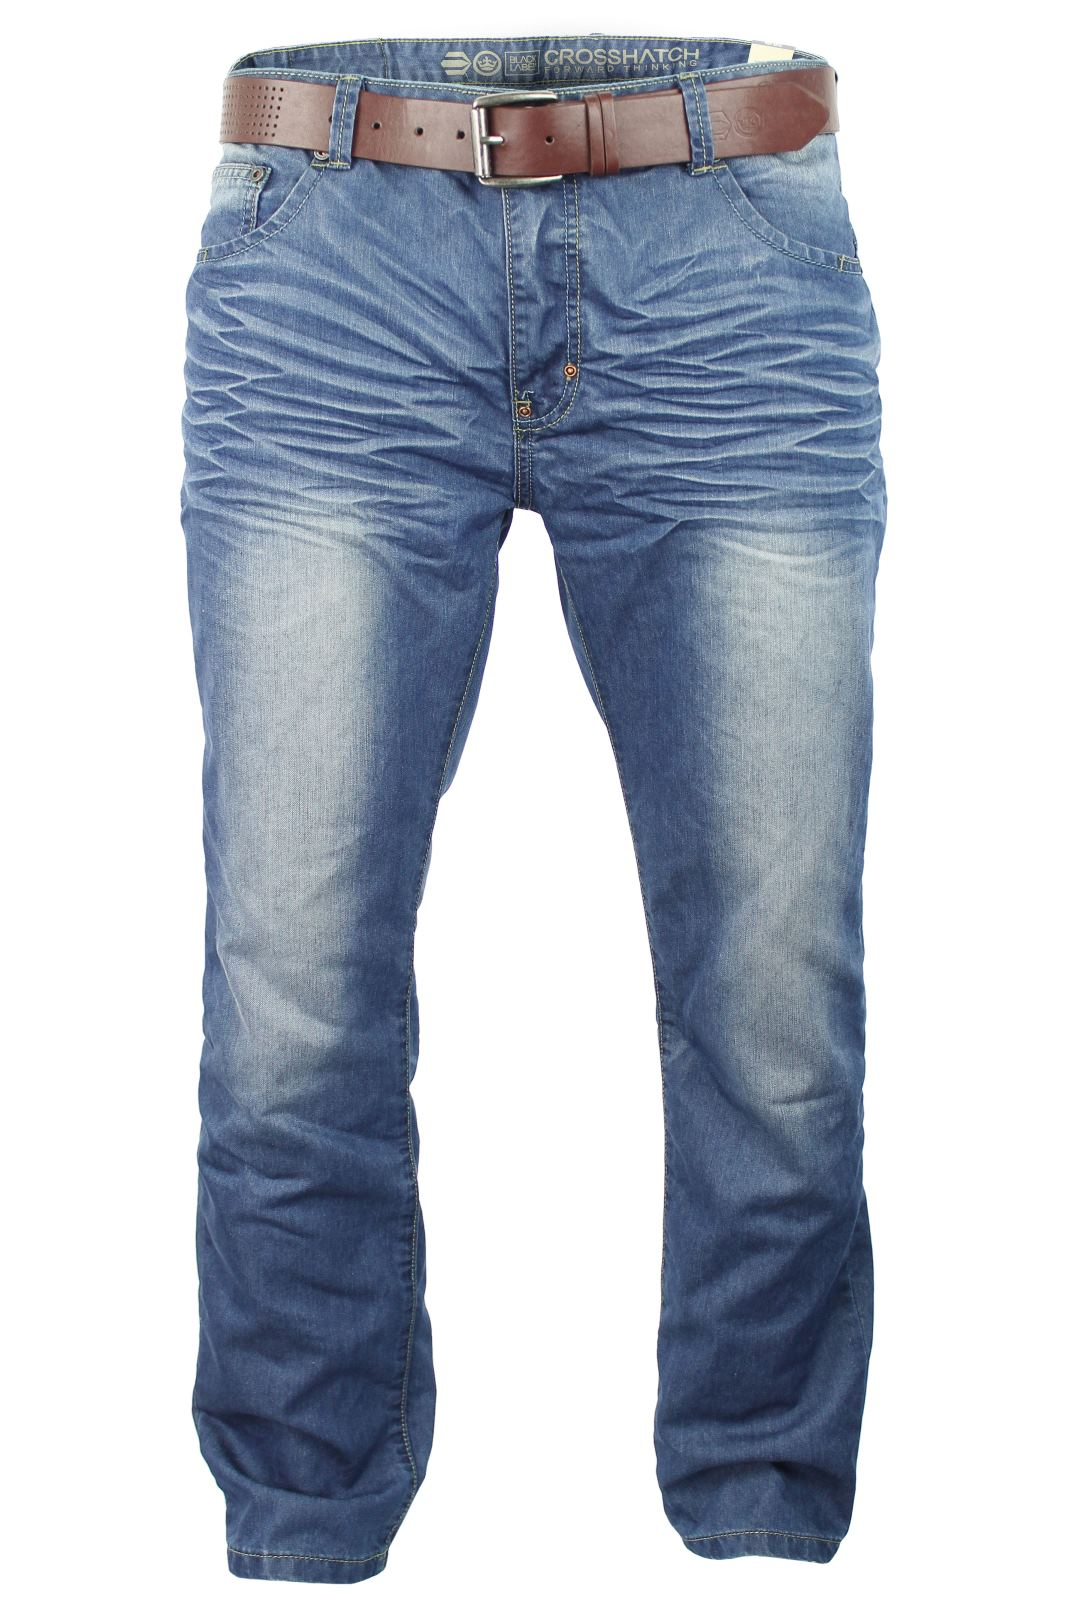 Mens Crosshatch Jeans Raw Stone Washed Denim Button Fly-2